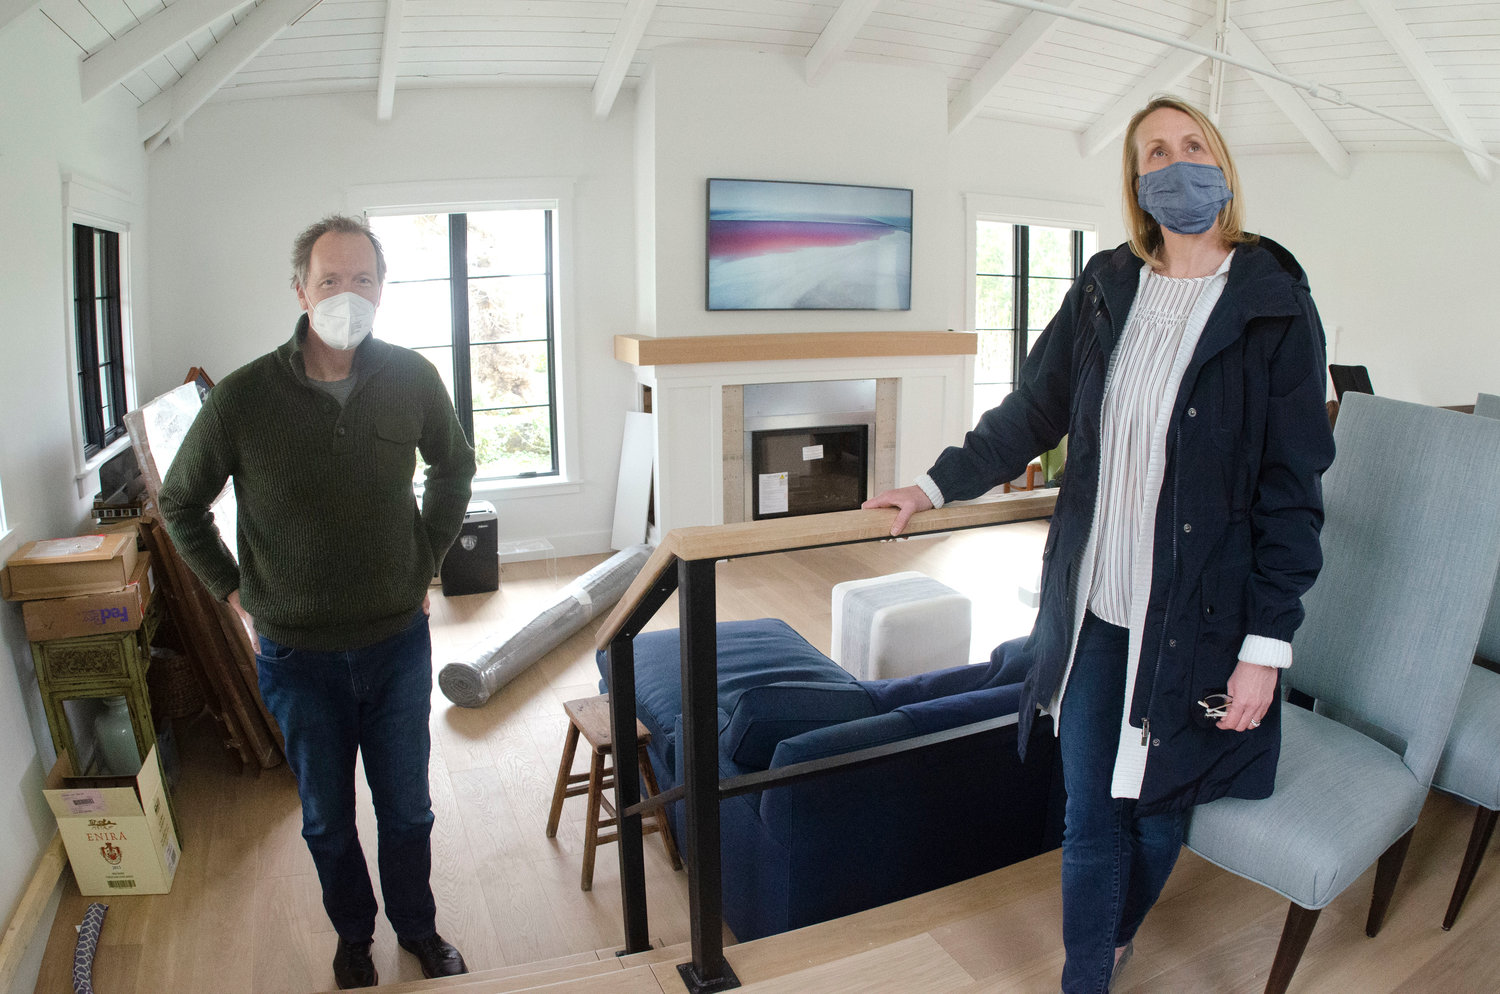 The Iseleibs are doing a major renovation of their new home, with the help of architect Cory Kallfelz (right).